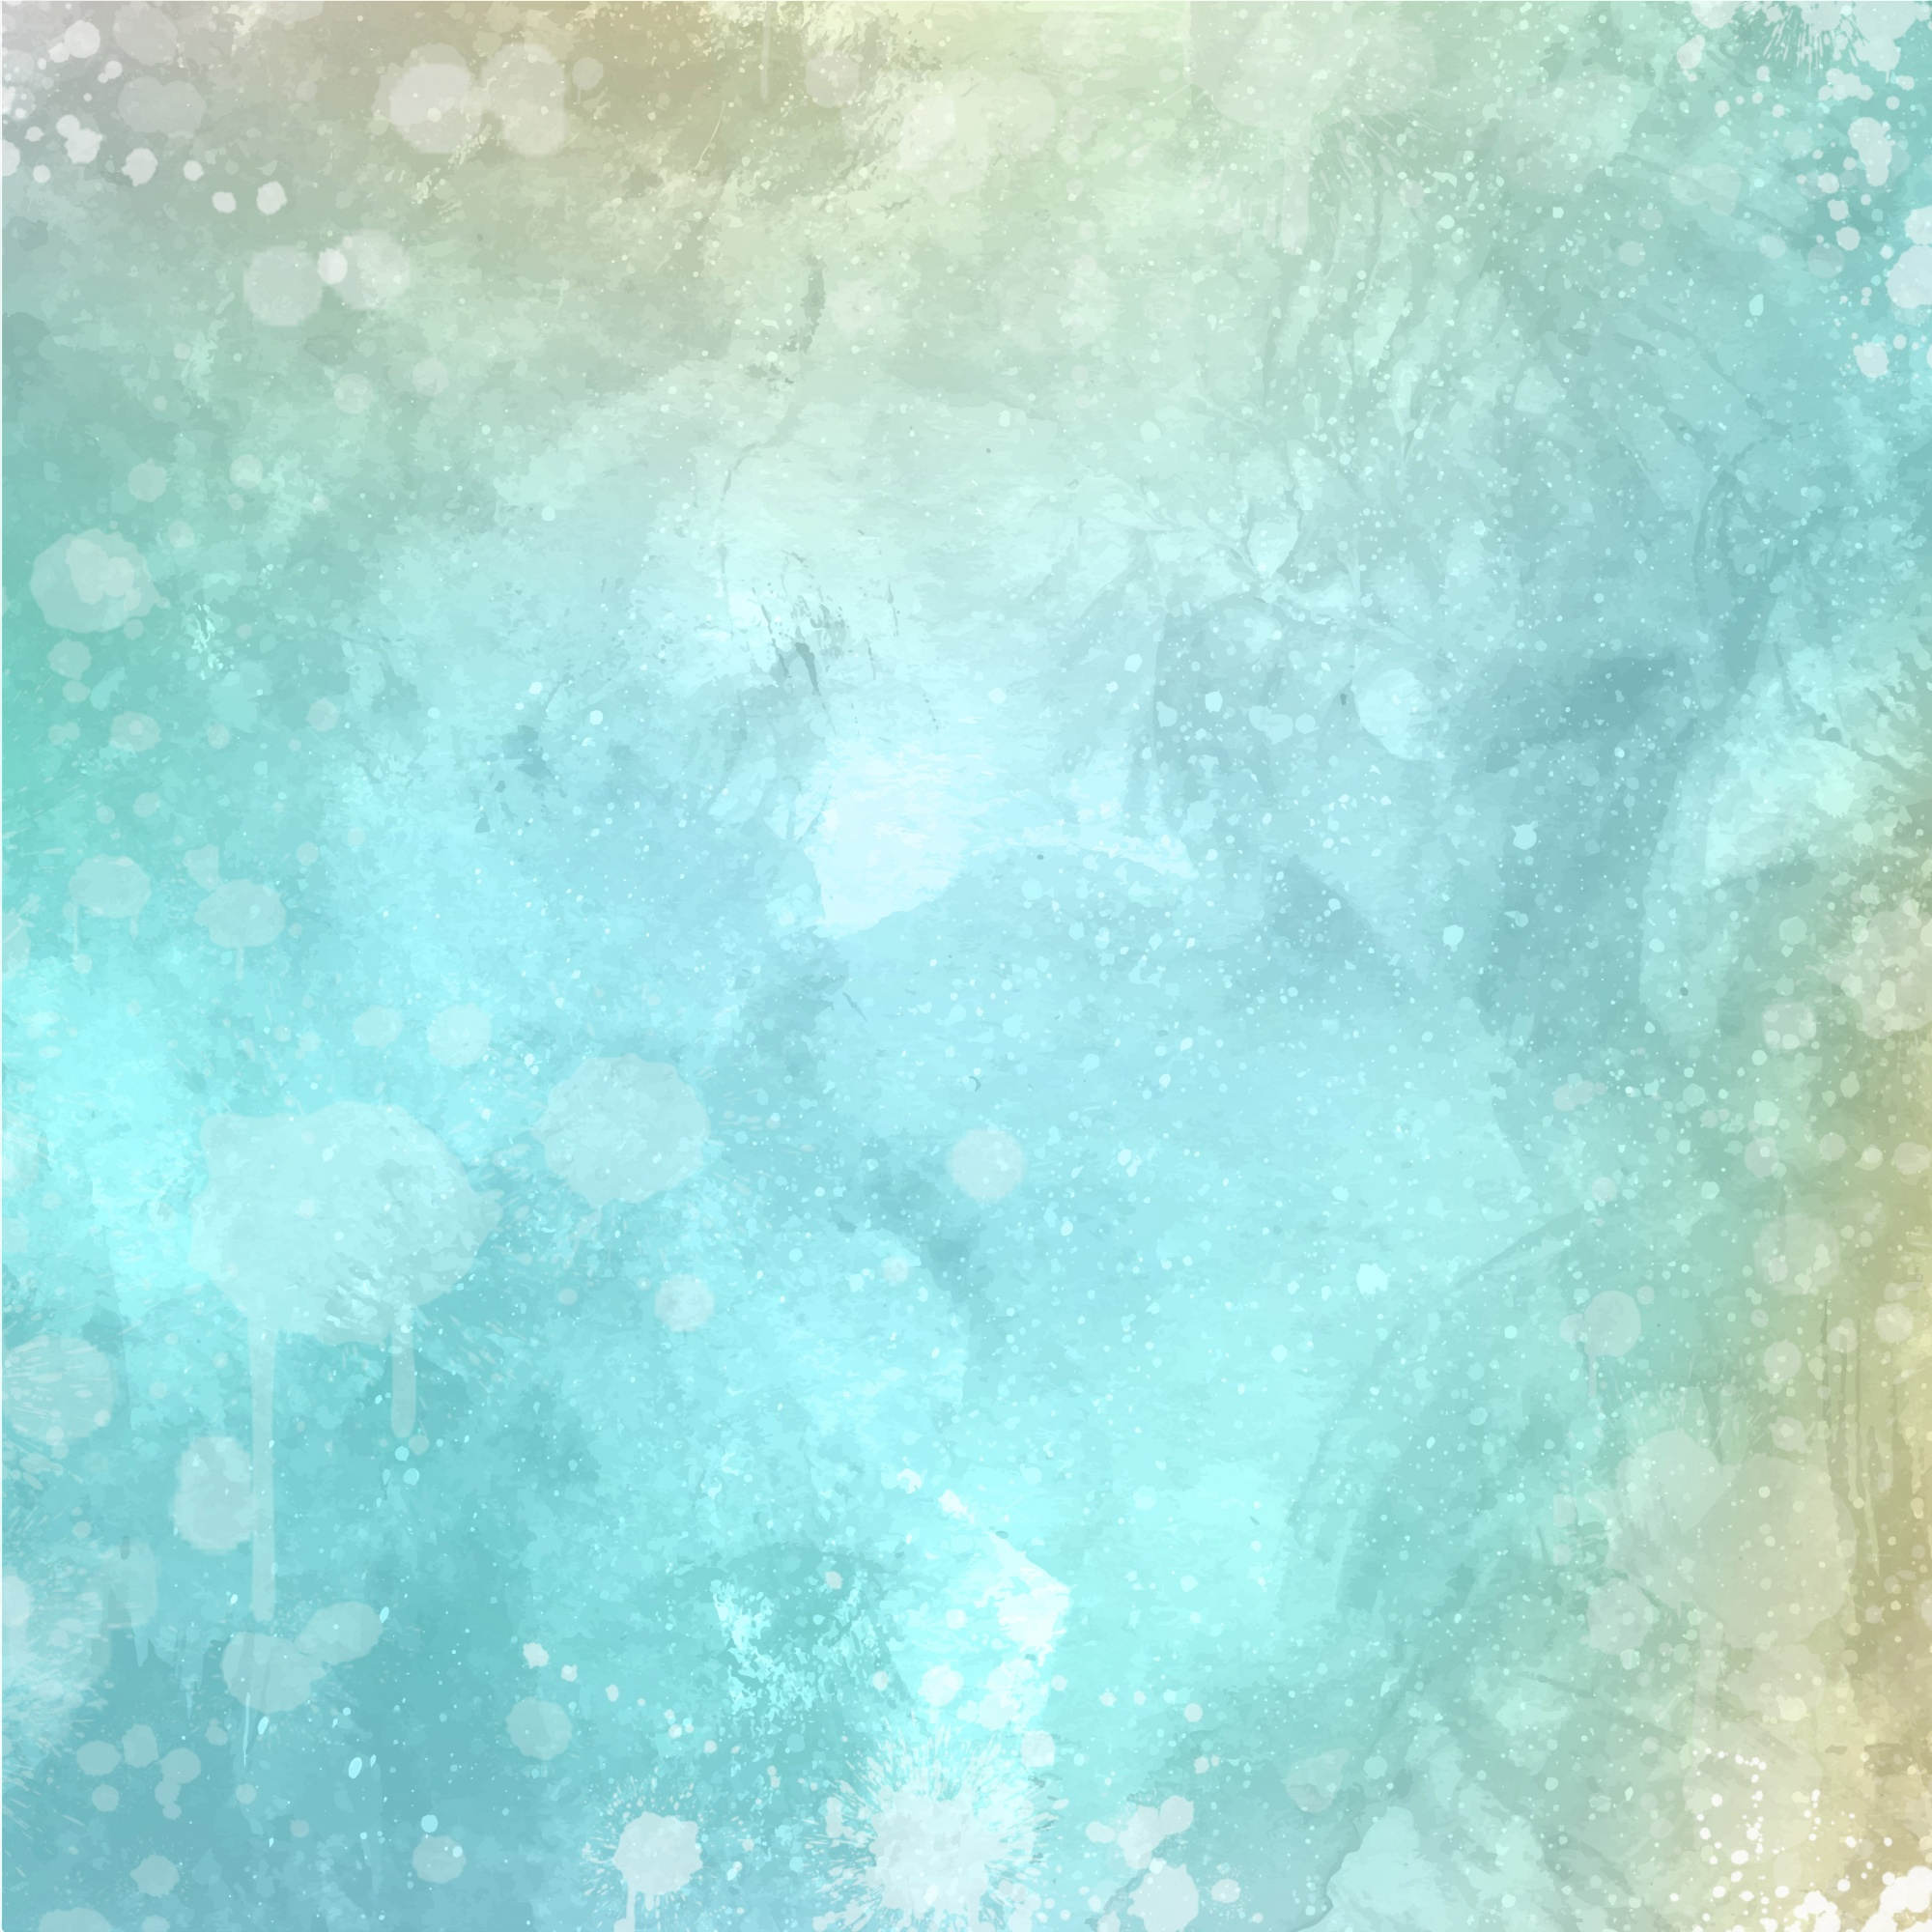 Gradient abstract texture background